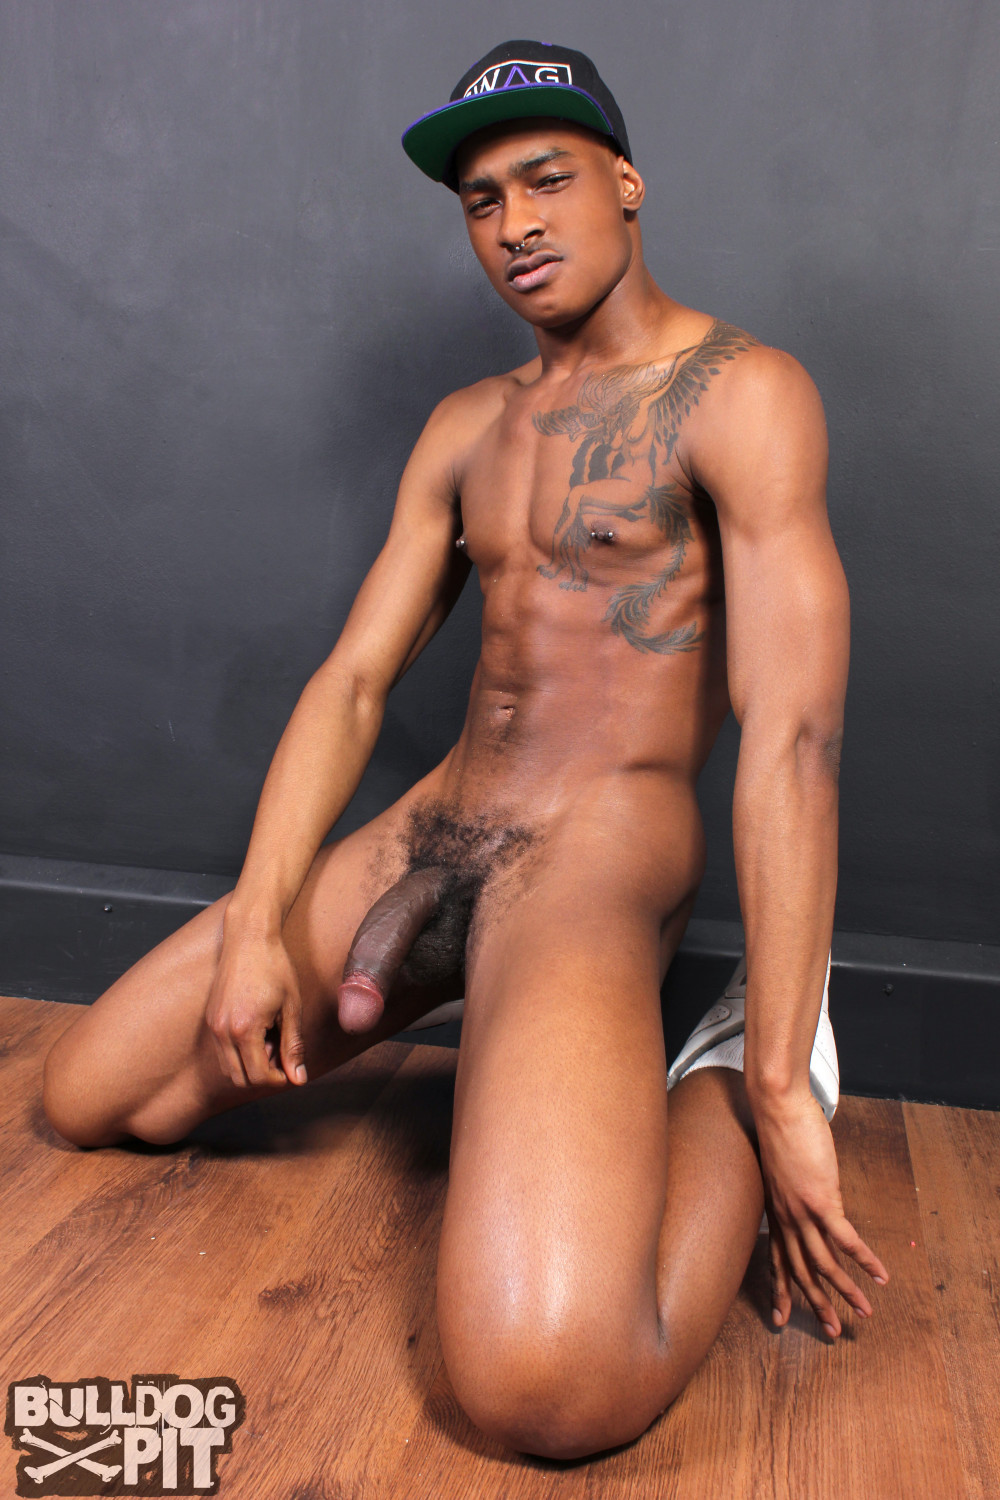 Bulldog Pit Marco Session and Riley Coxx and Tyler Tyson Interracial Threesome Big Black Cock Amateur Gay Porn 15 Amateur Interracial Threesome In Underground London Sex Club